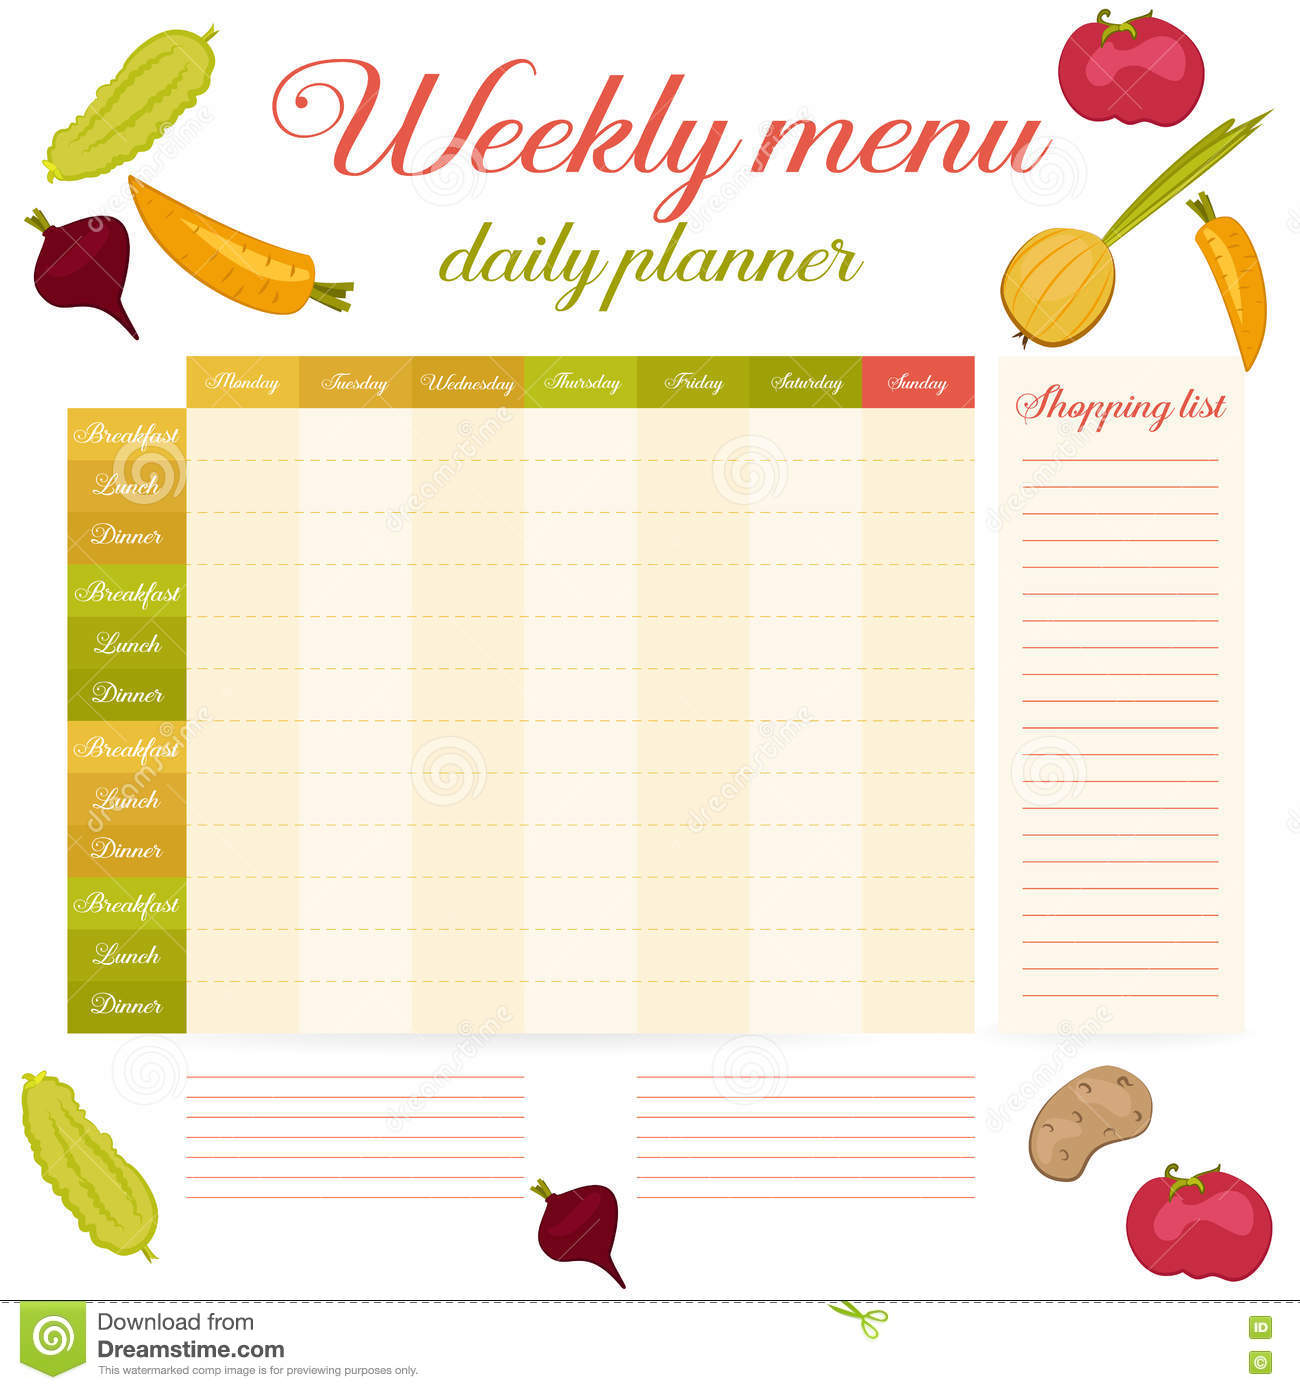 Cute Calendar Daily And Weekly Planner Stock Vector - Image: 76601311